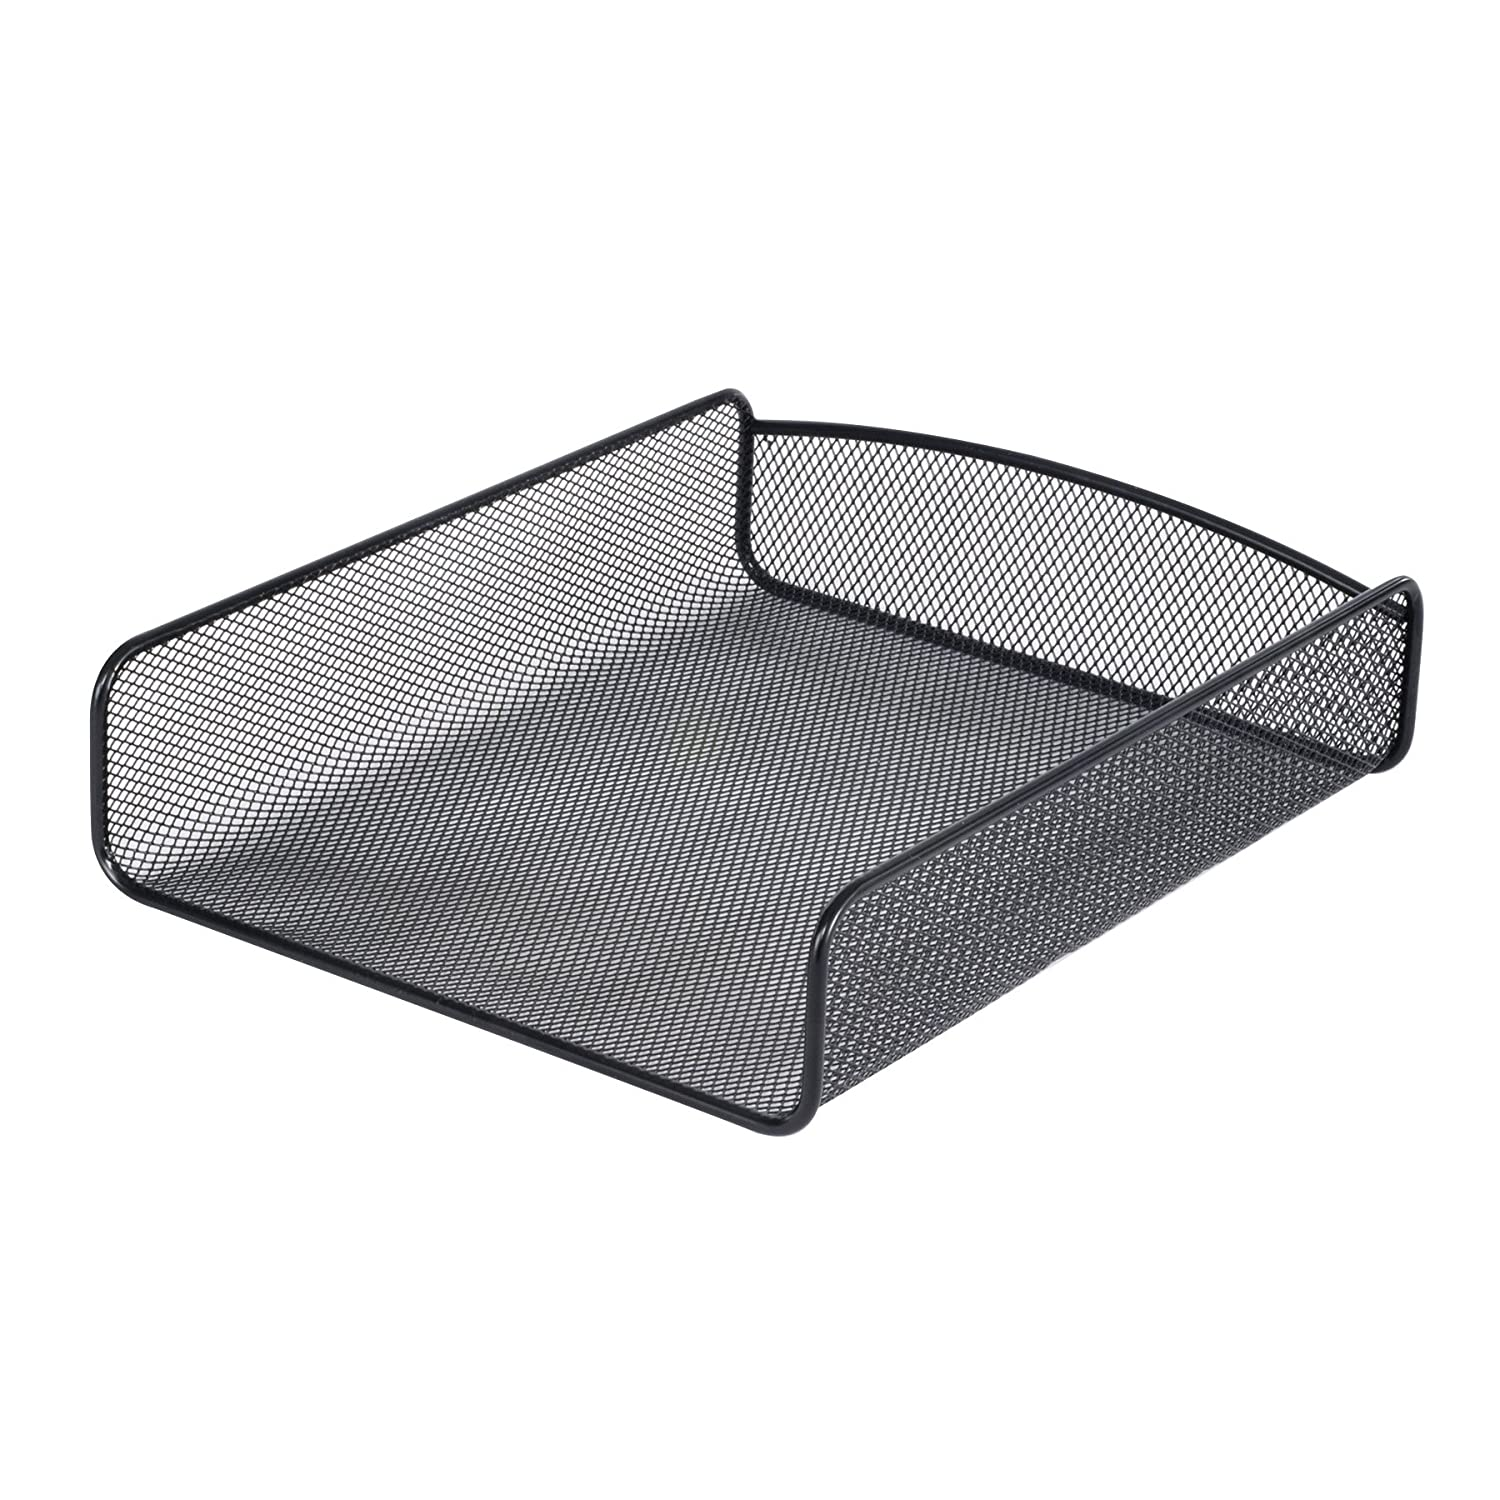 Safco Products Onyx Mesh Single Tray Desktop Organizer 3272BL, Black Powder Coat Finish, Durable Steel Mesh Construction